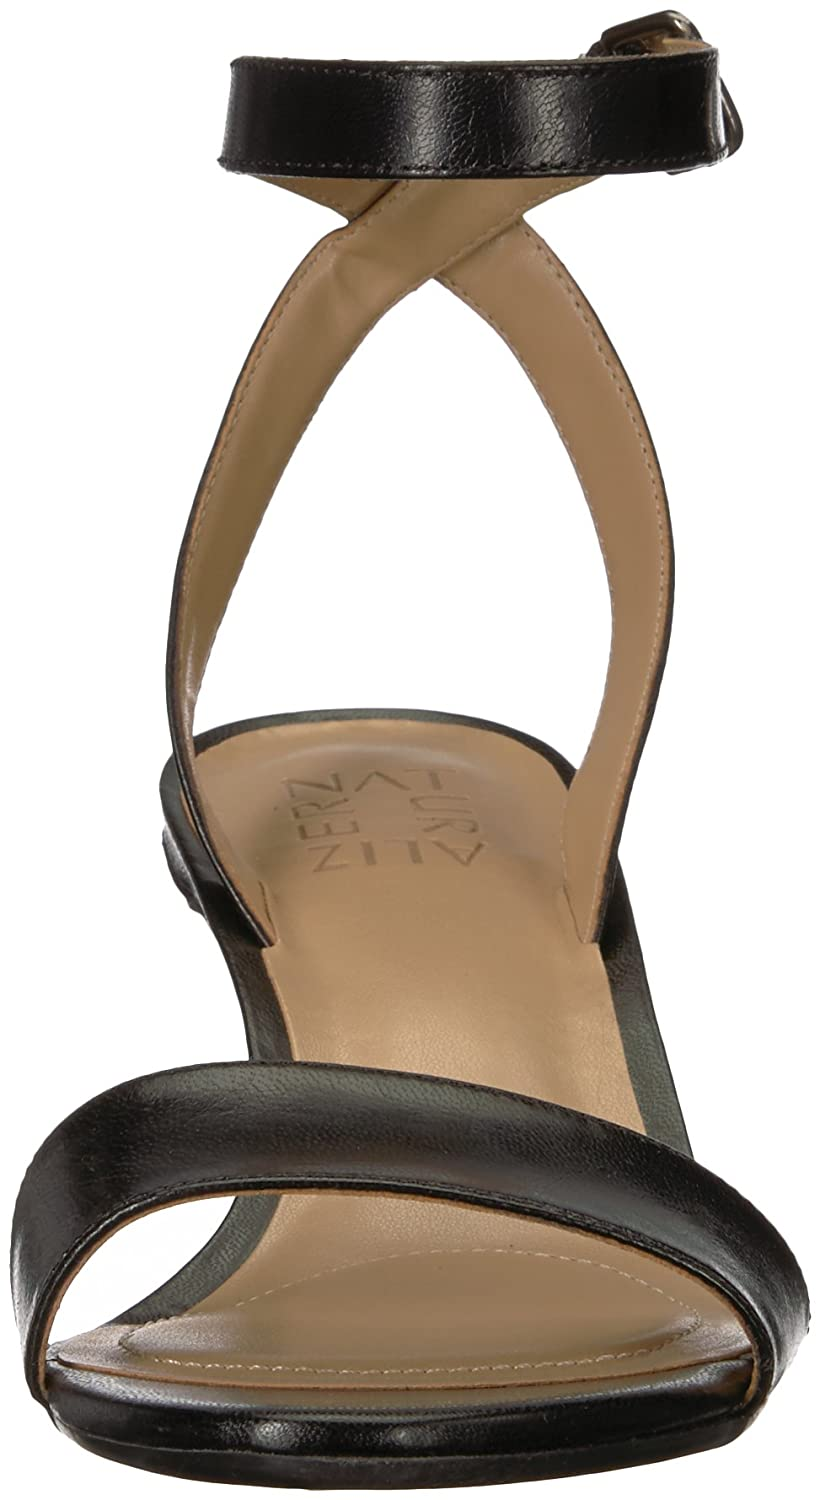 210c17be9083 Naturalizer Women s Tinda Heeled Sandal  Buy Online at Low Prices in India  - Amazon.in